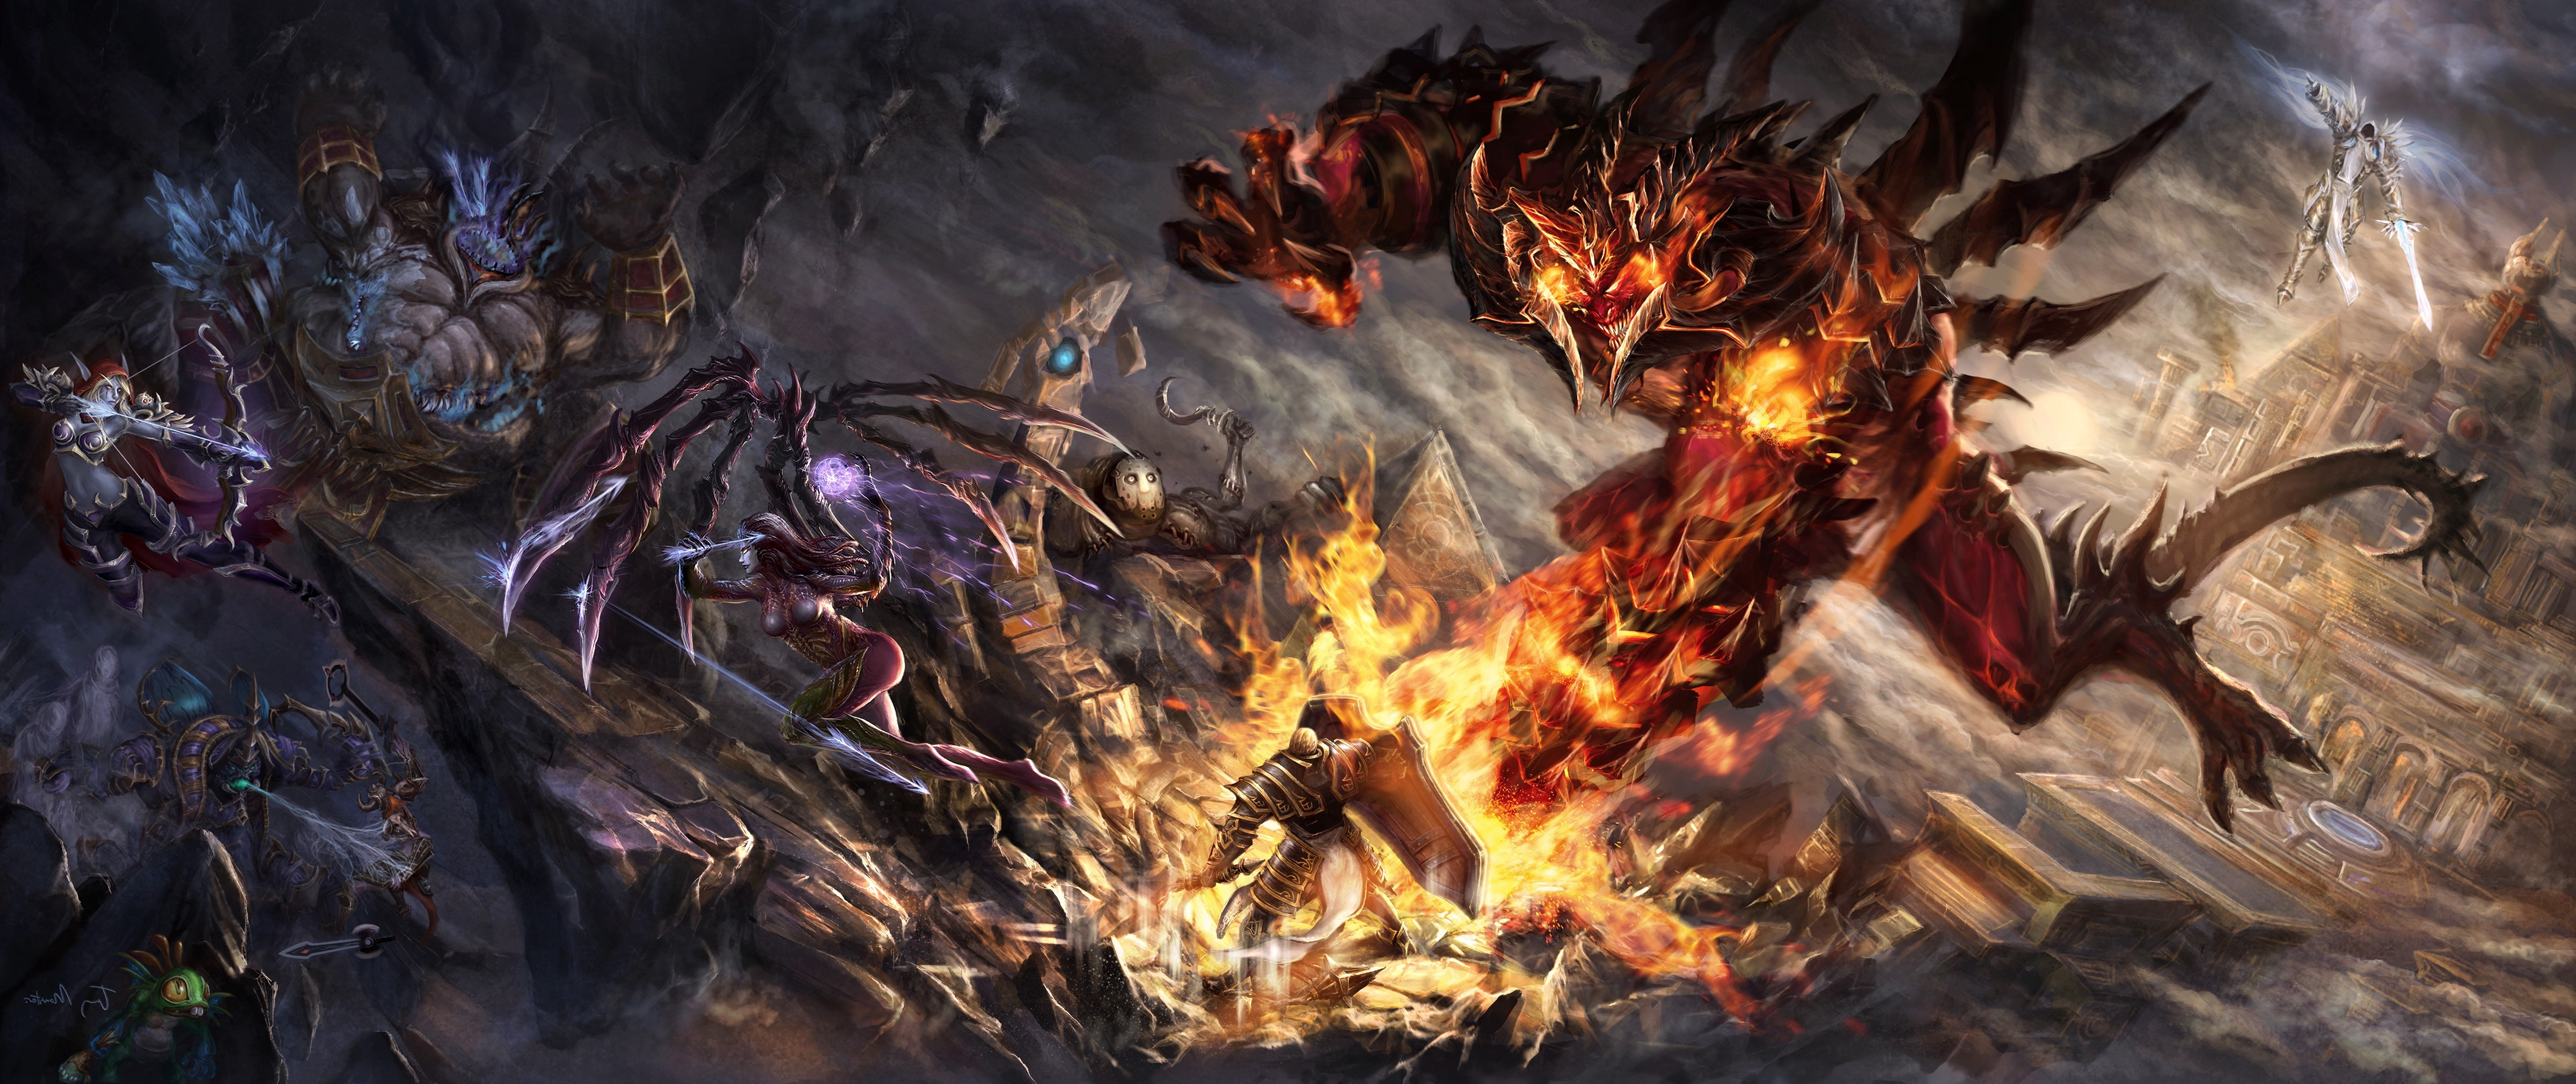 Free Download Heroes Of The Storm Hd Wallpapers And Background